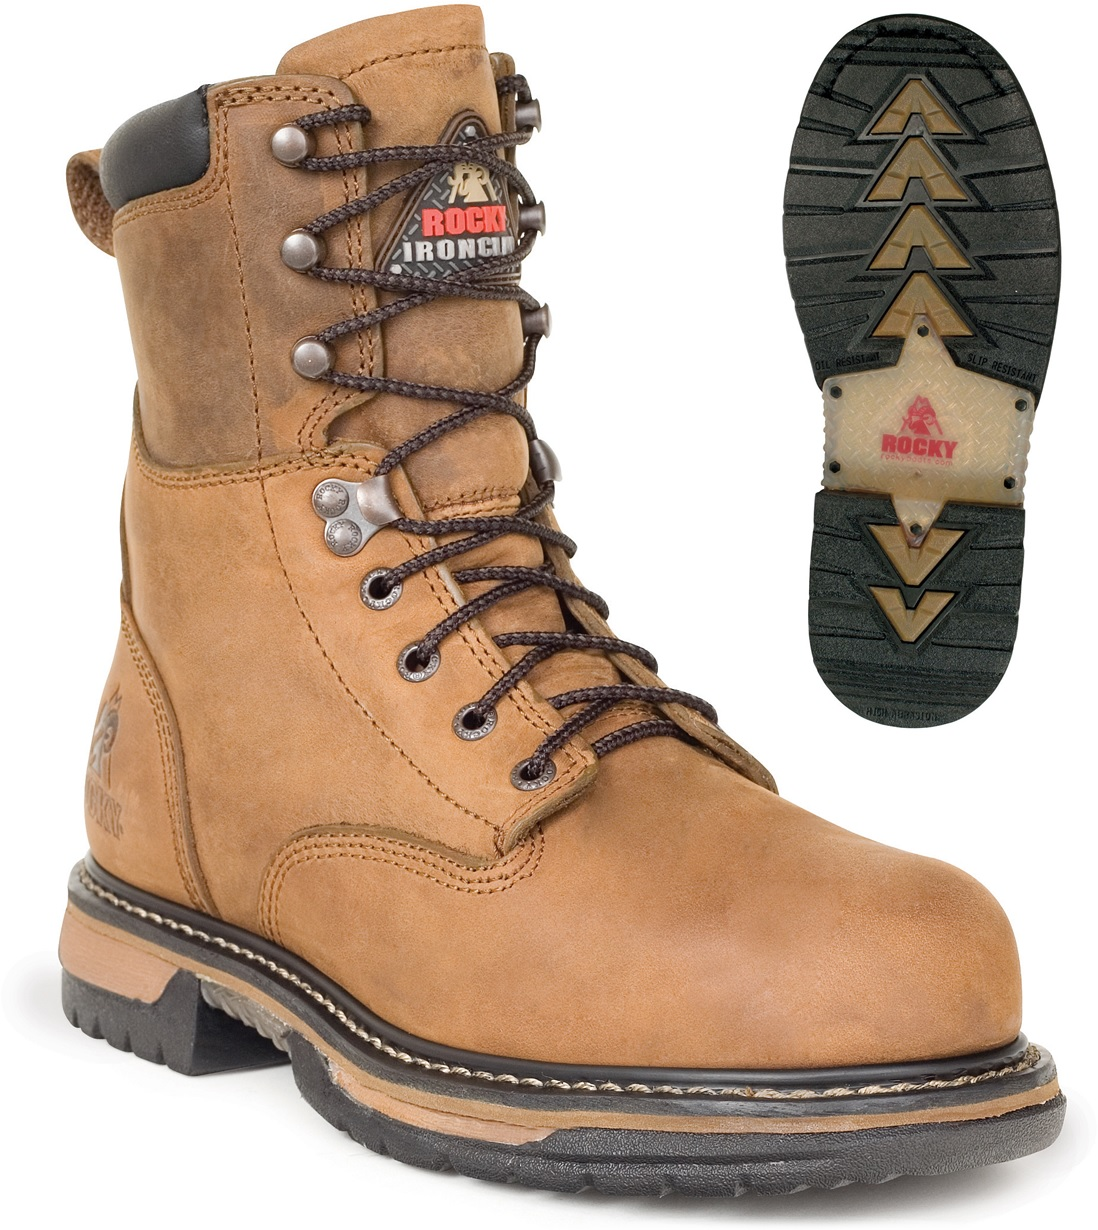 Working Boots For Men cgERkP3d